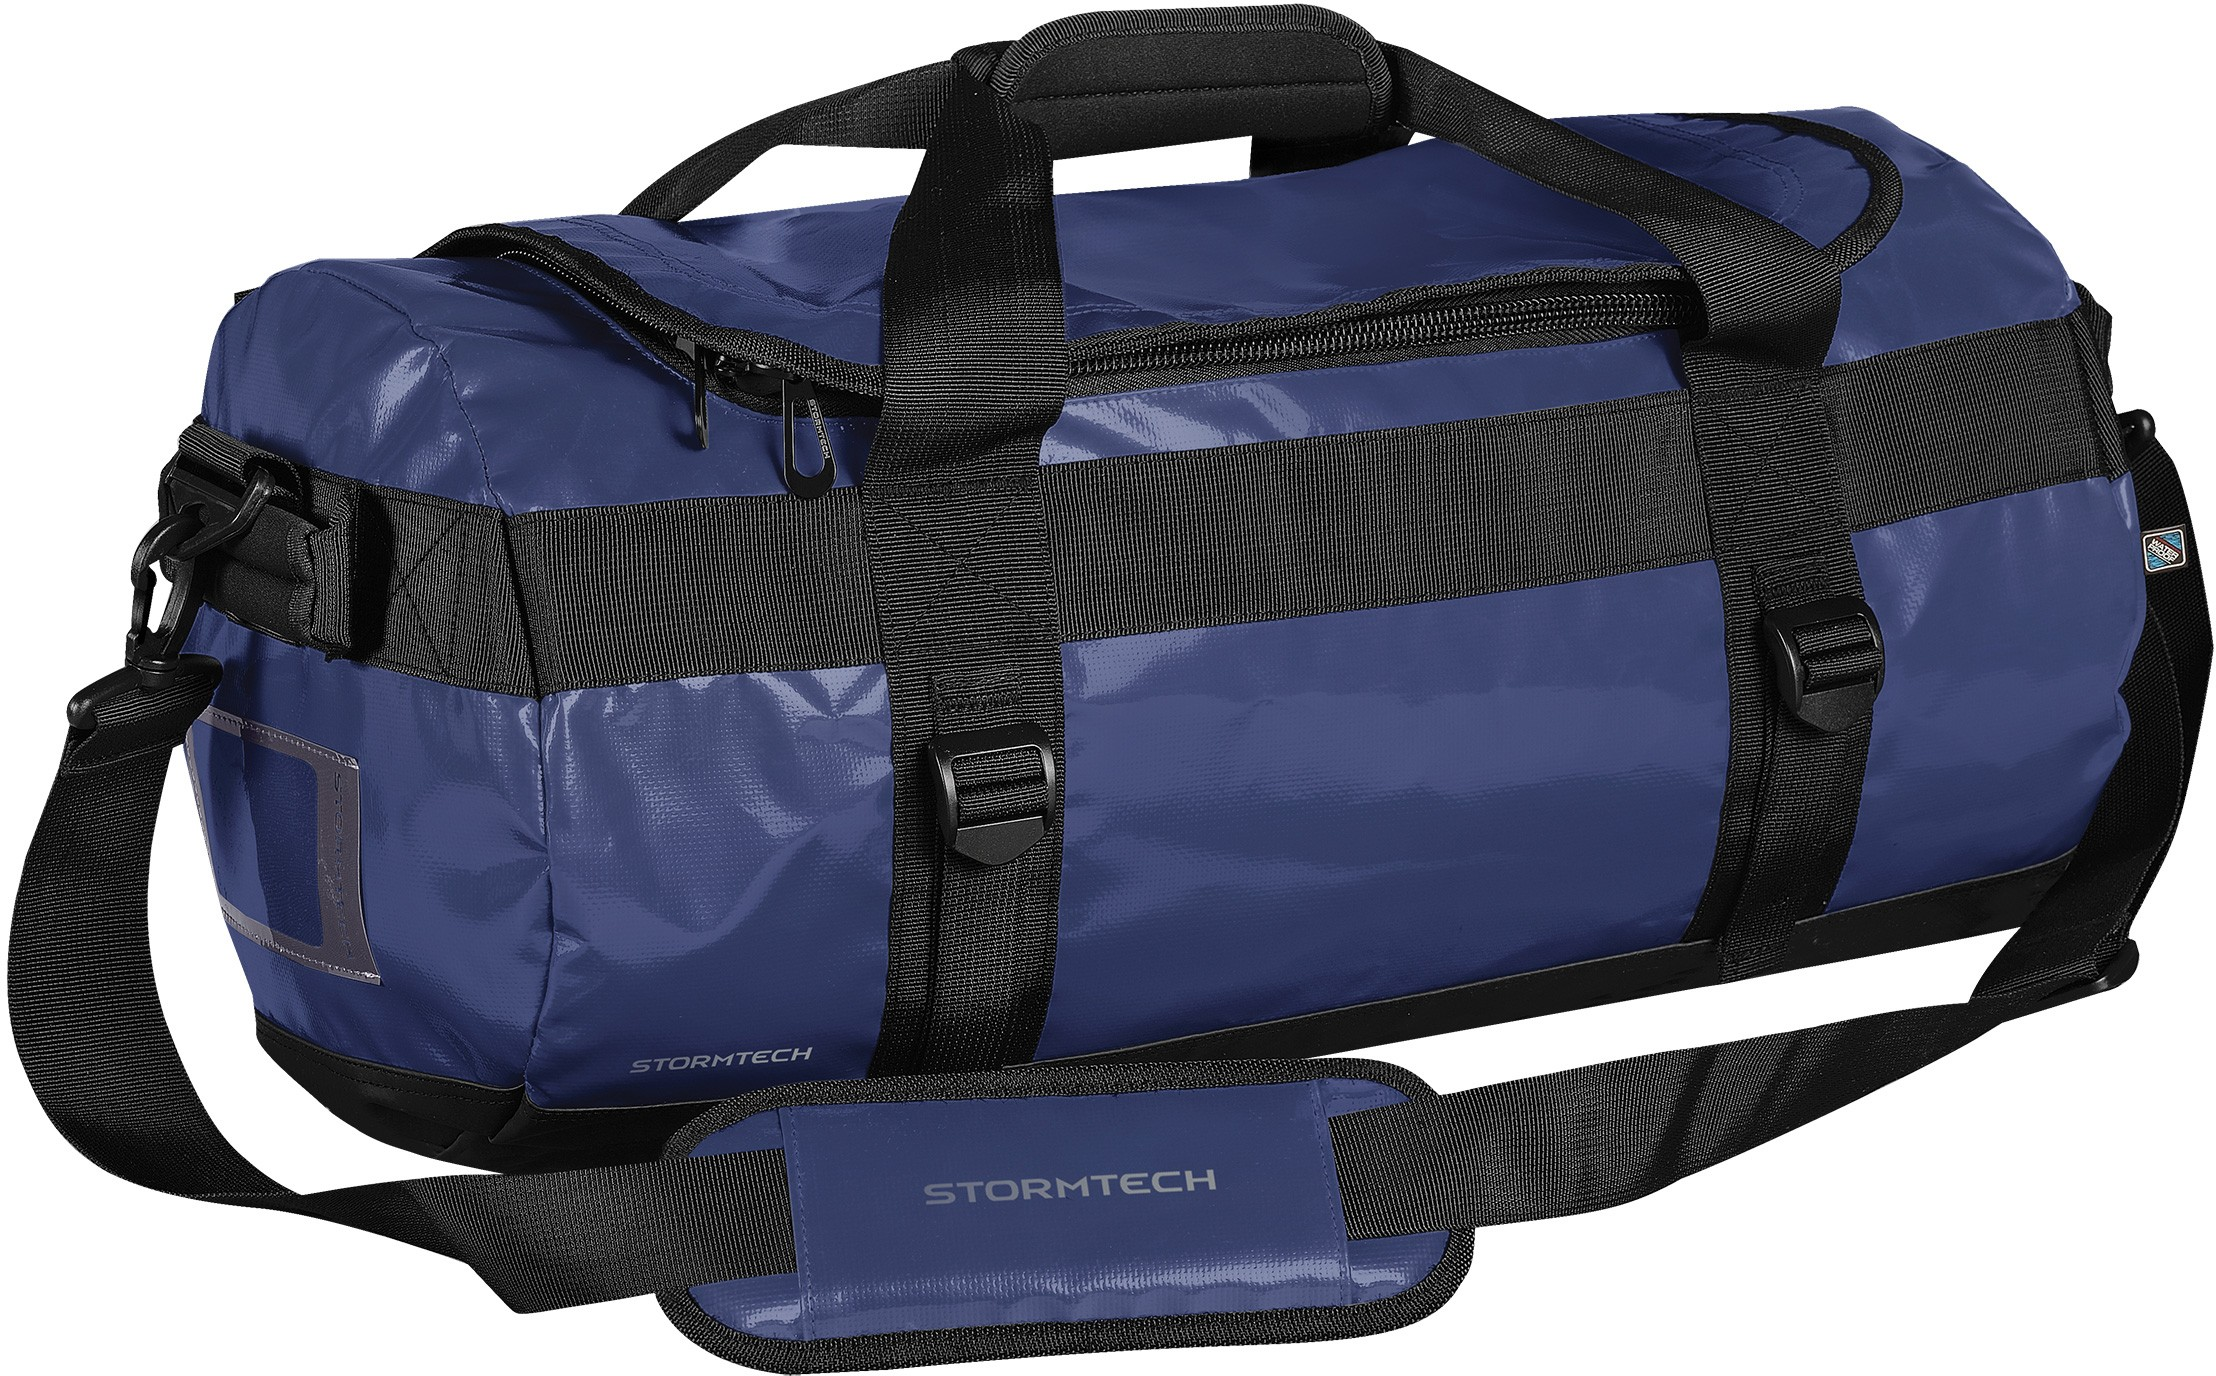 Stormtech Atlantis Waterproof Gear Bag - Small